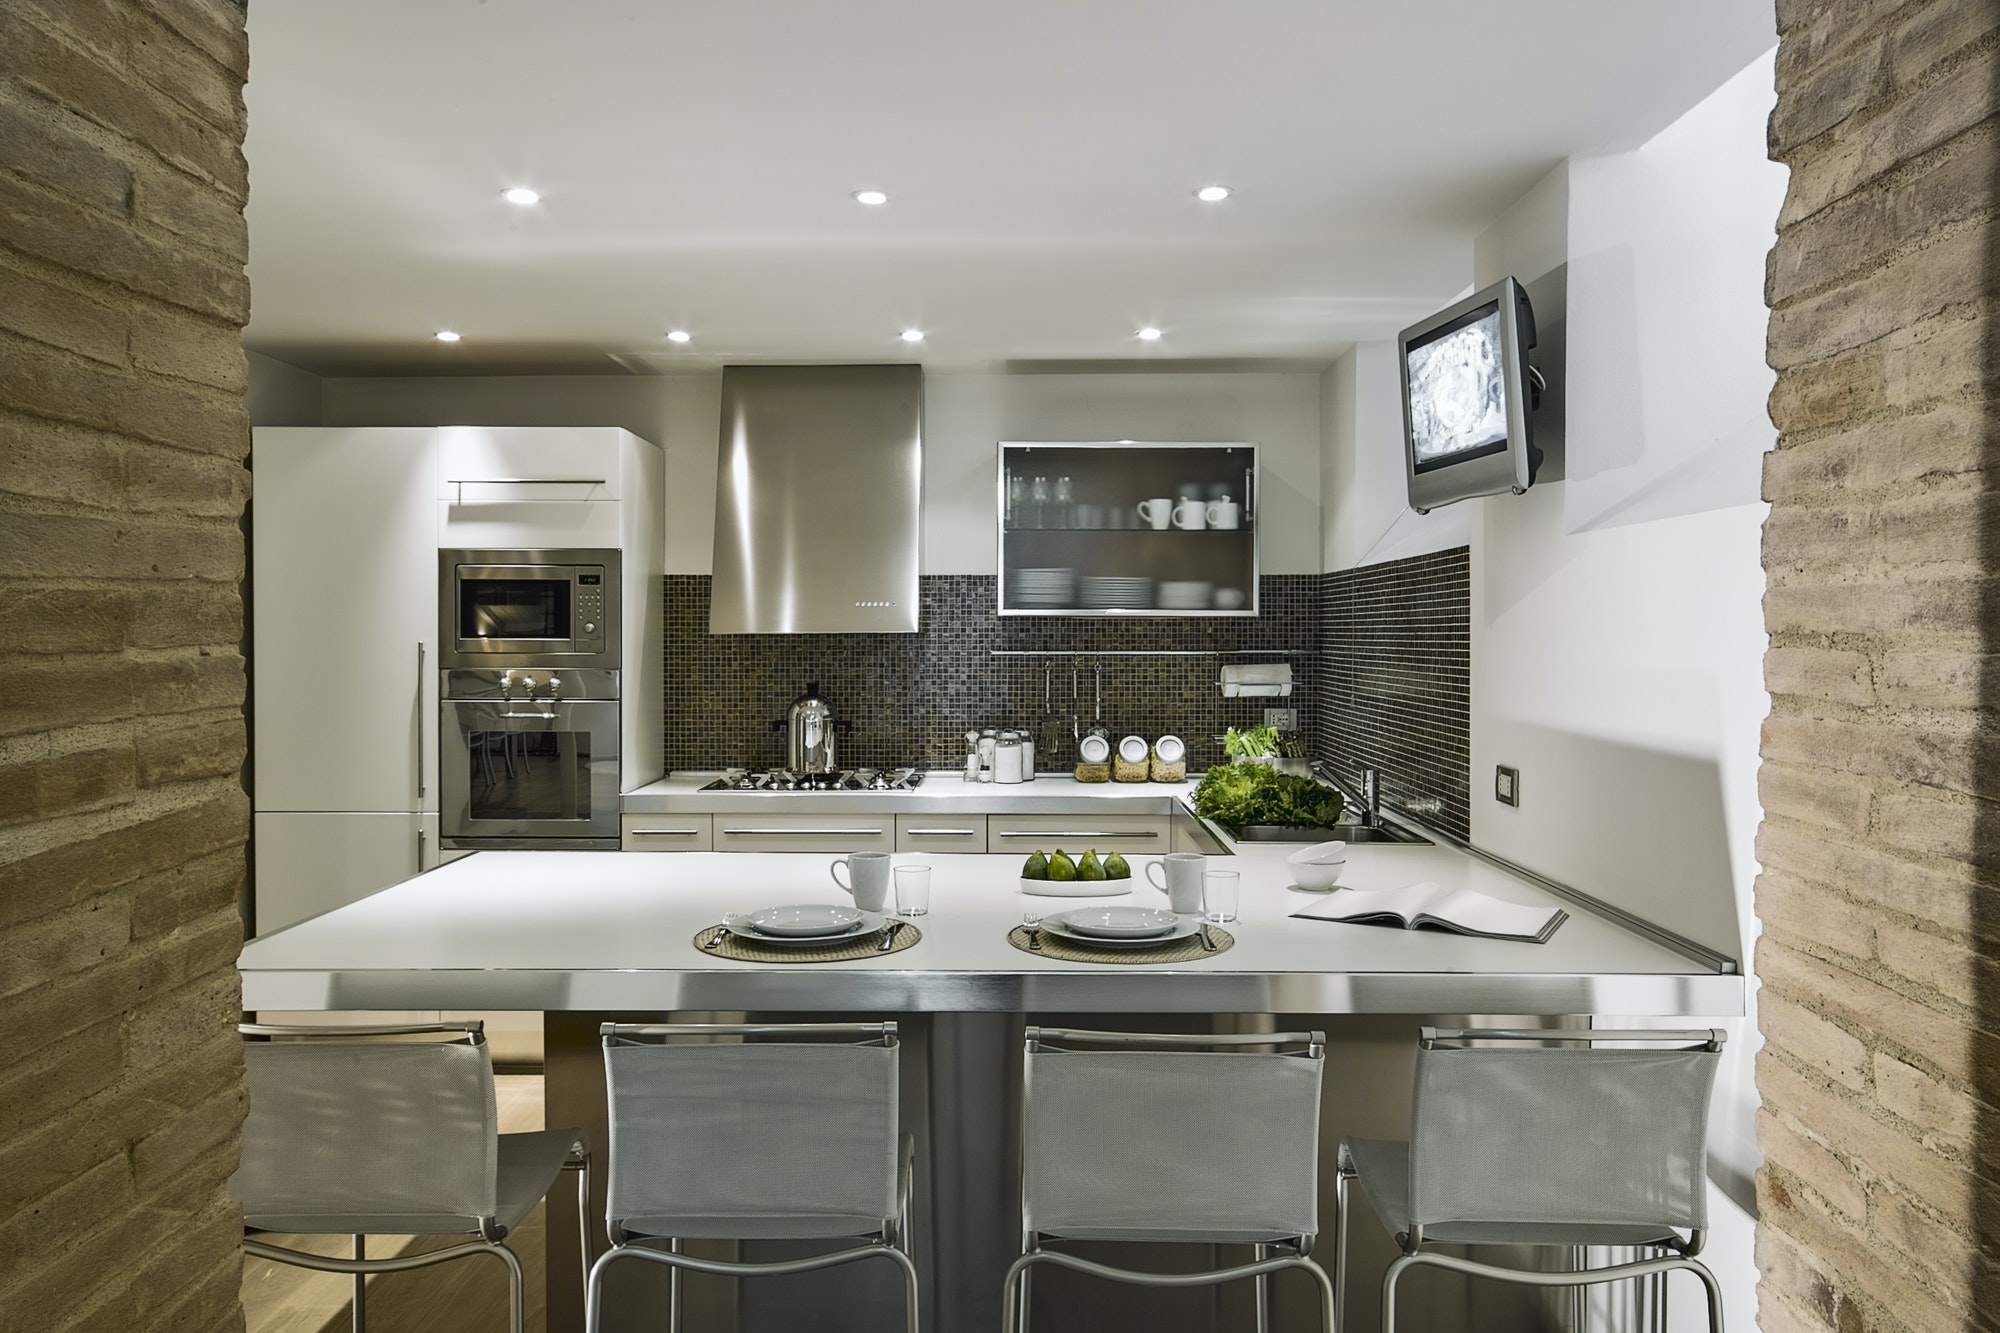 Interiors of the Kitchen in a Modern Apartment